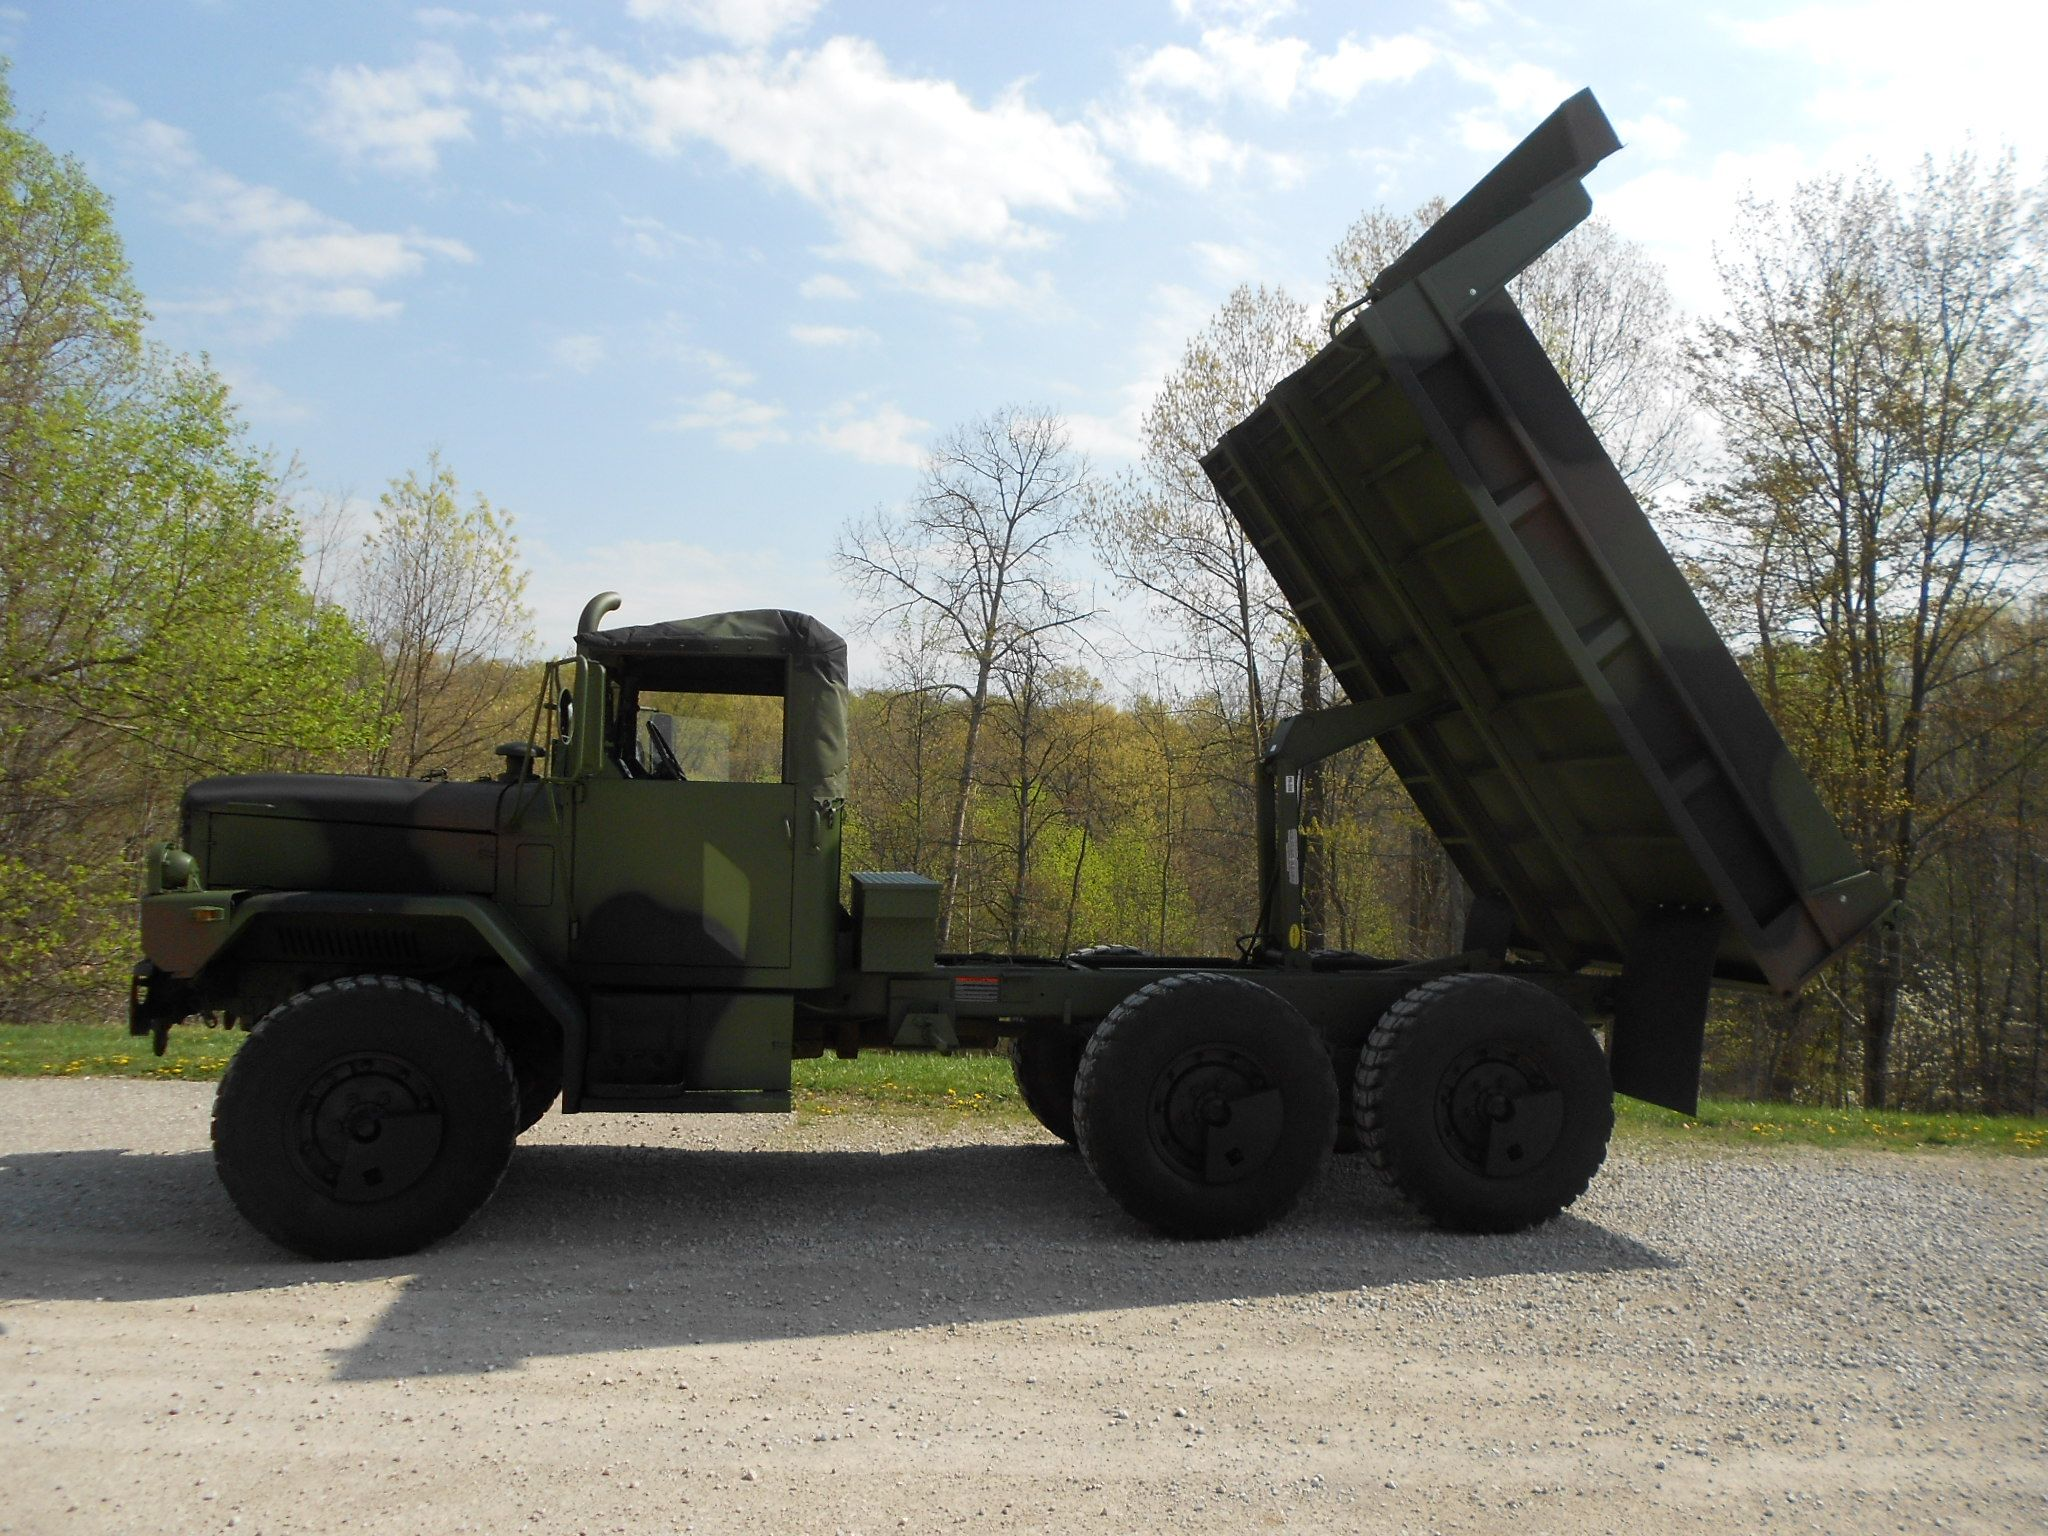 M35A2 with dump bed  | Dump trucks, 6x6 truck, Military vehicles